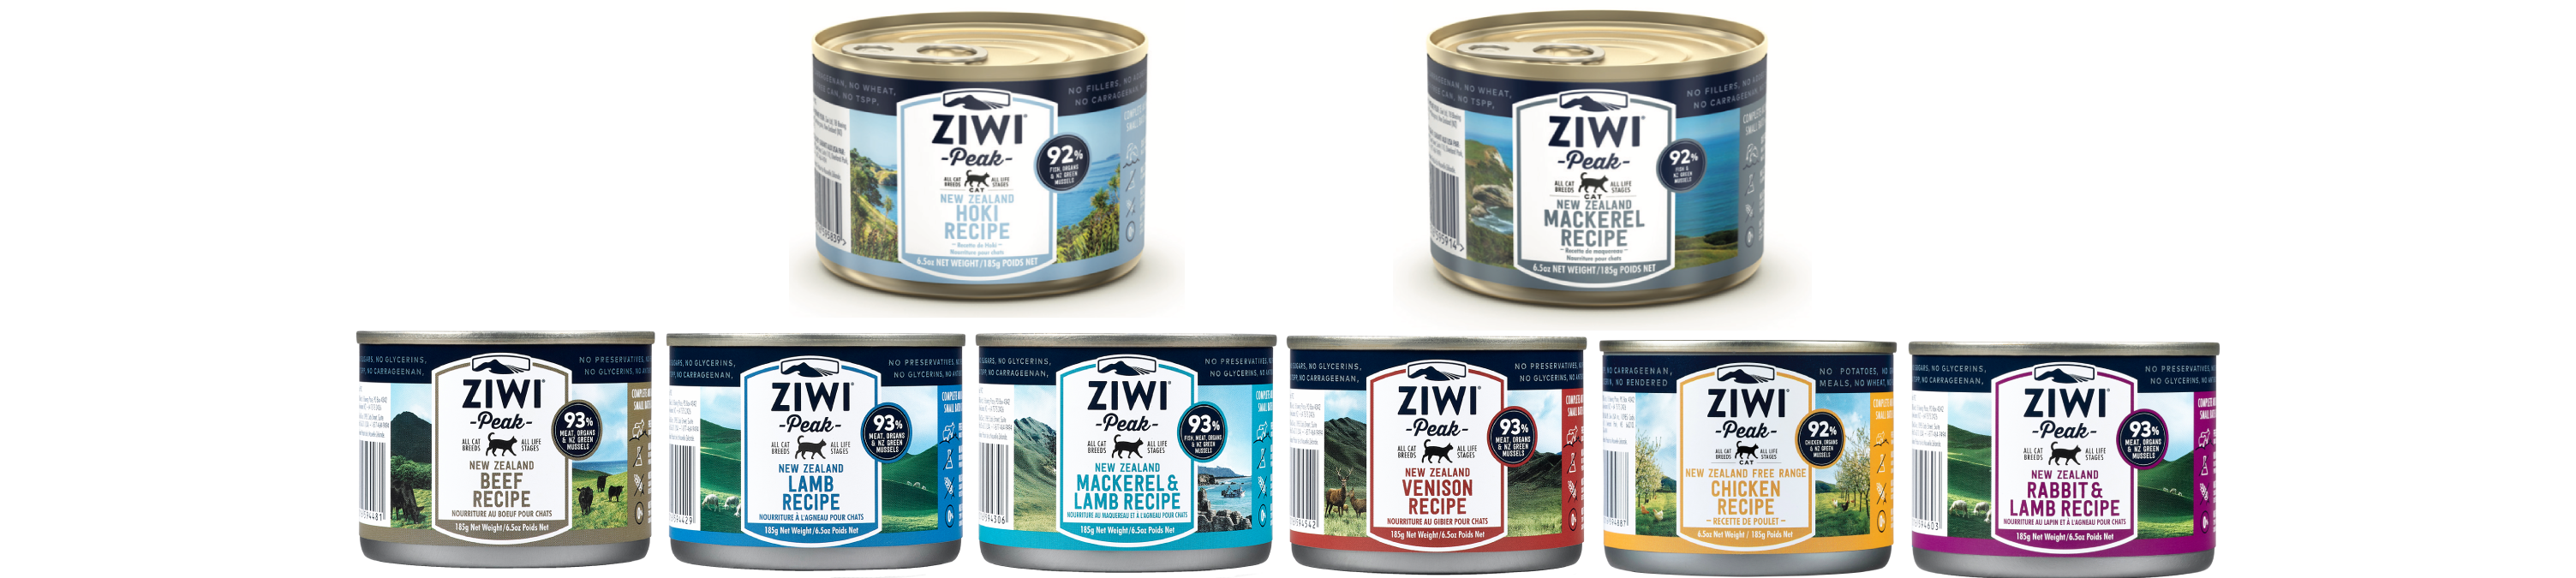 ZIWI Peak new 185-gram cat cans